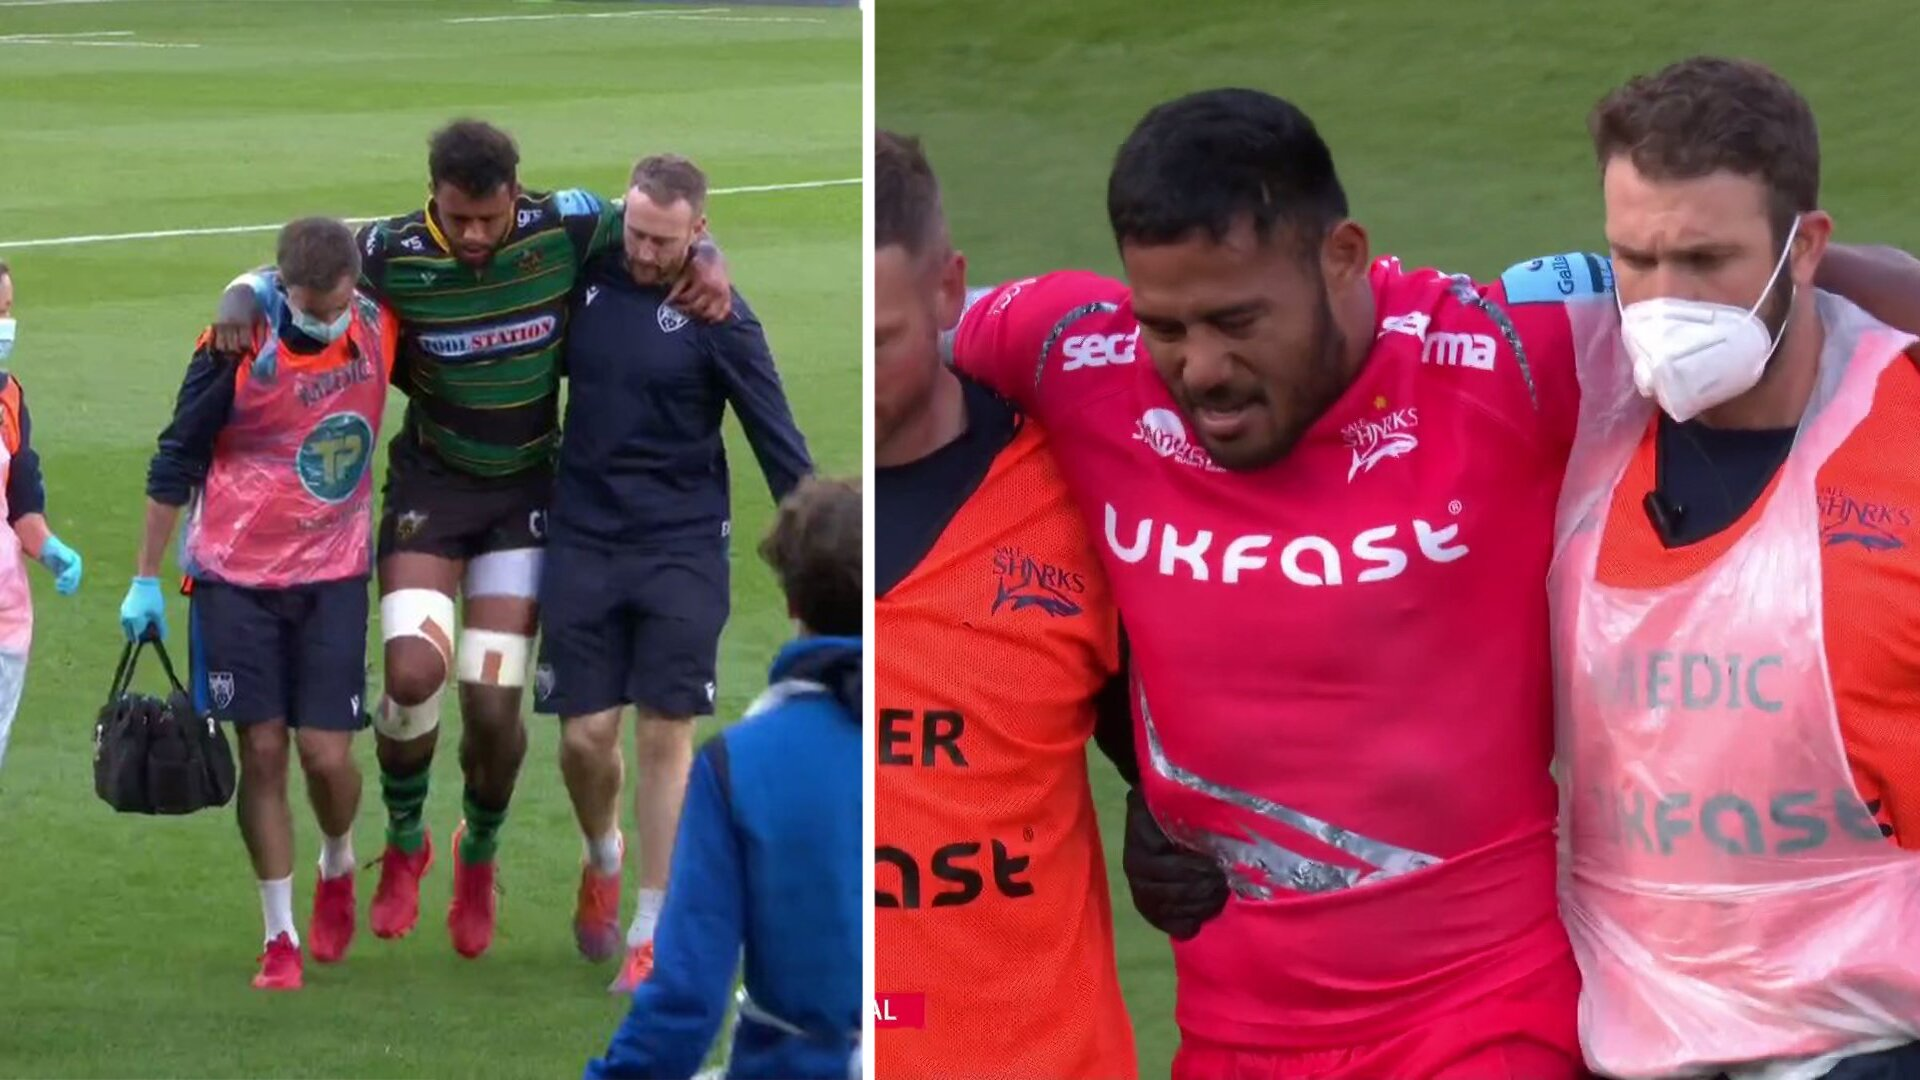 Injury disaster for England as multiple top stars are seriously injured